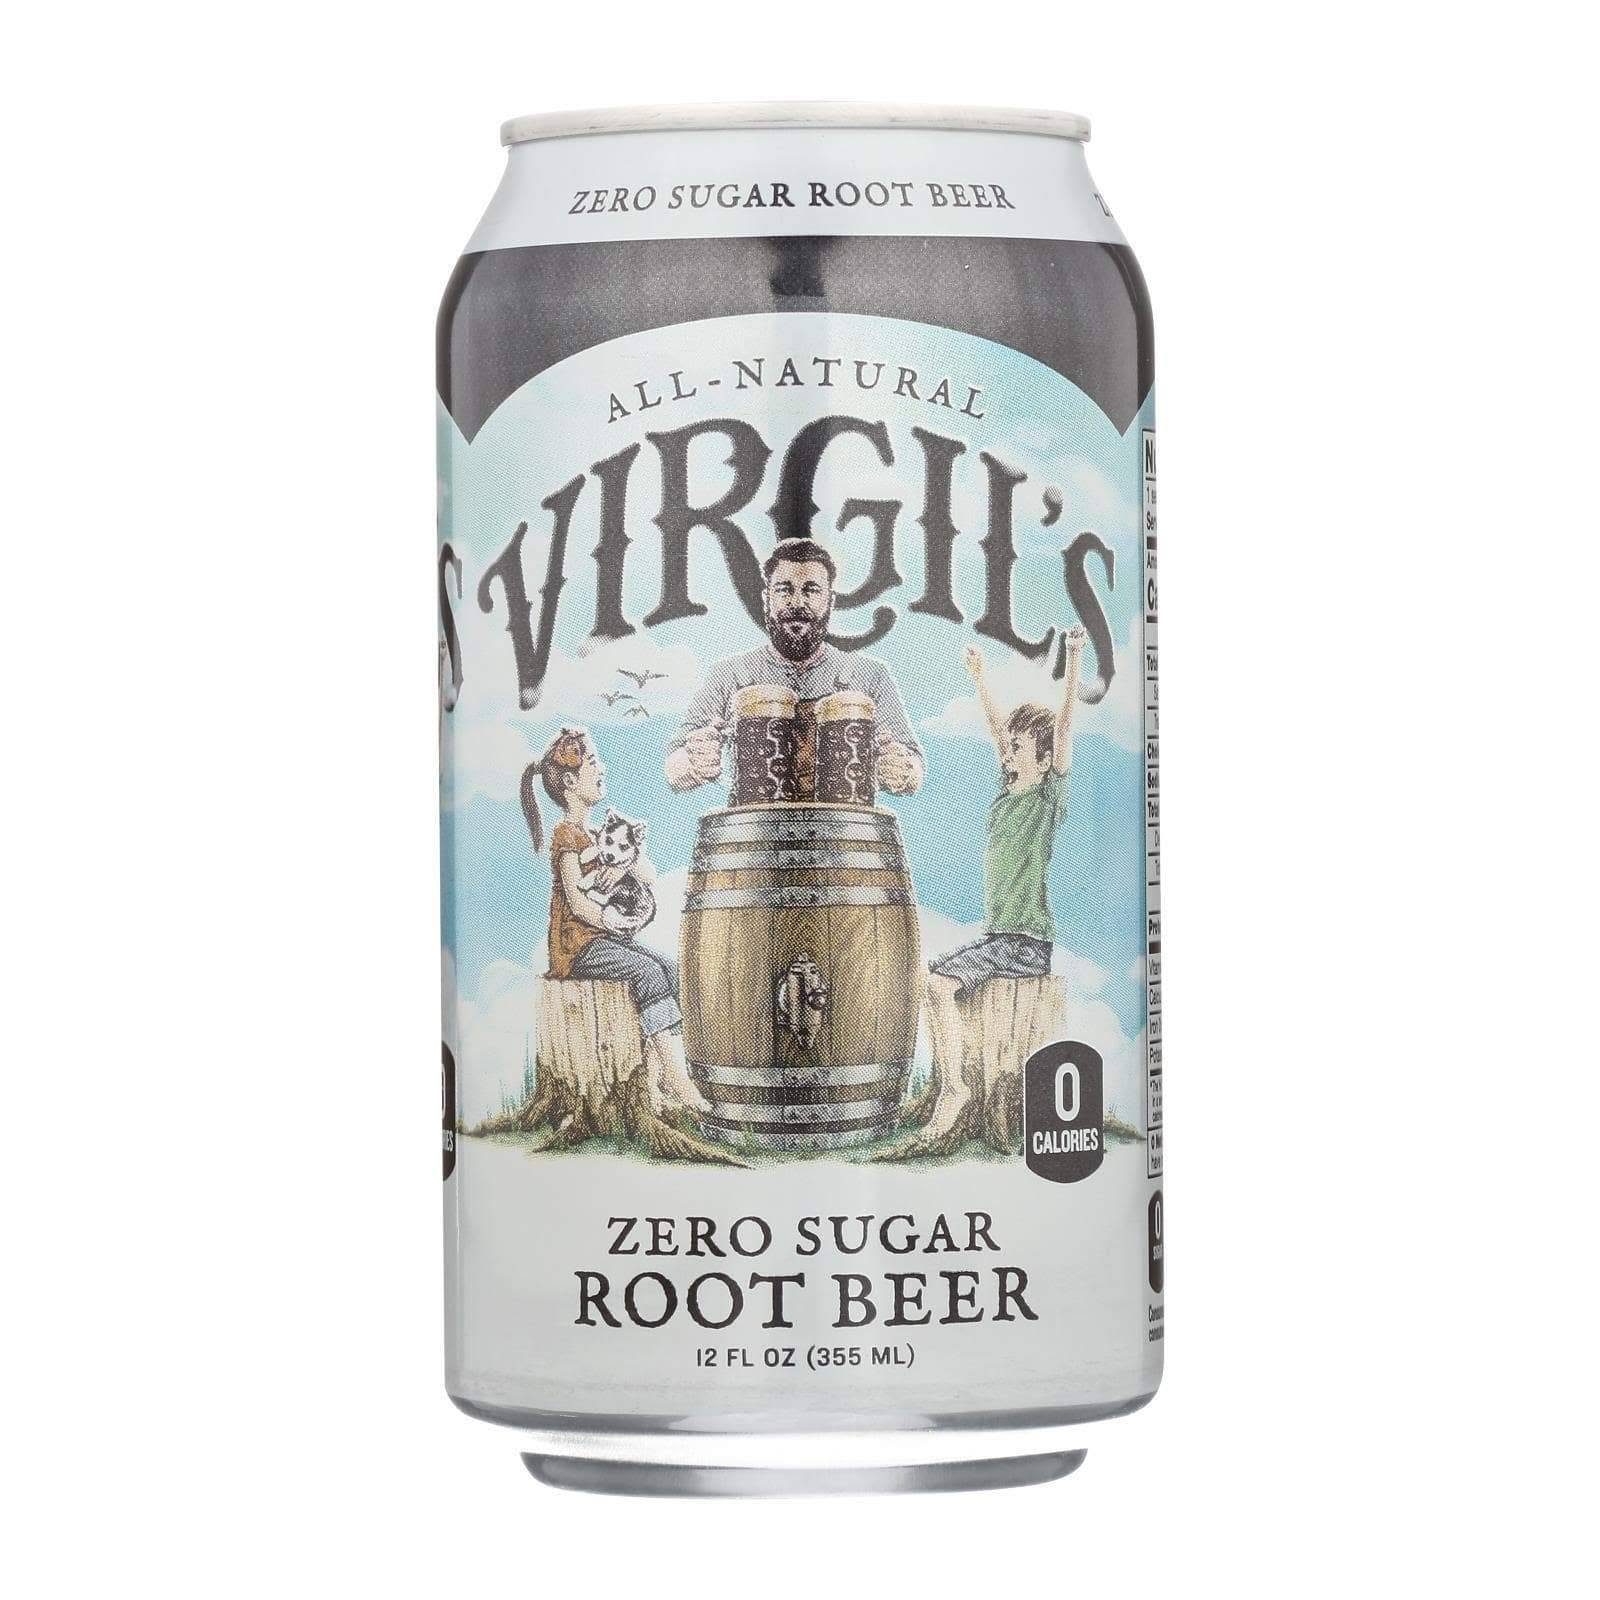 Virgil's Zero Sugar Root Beer - 6 pack, 12 fl oz cans